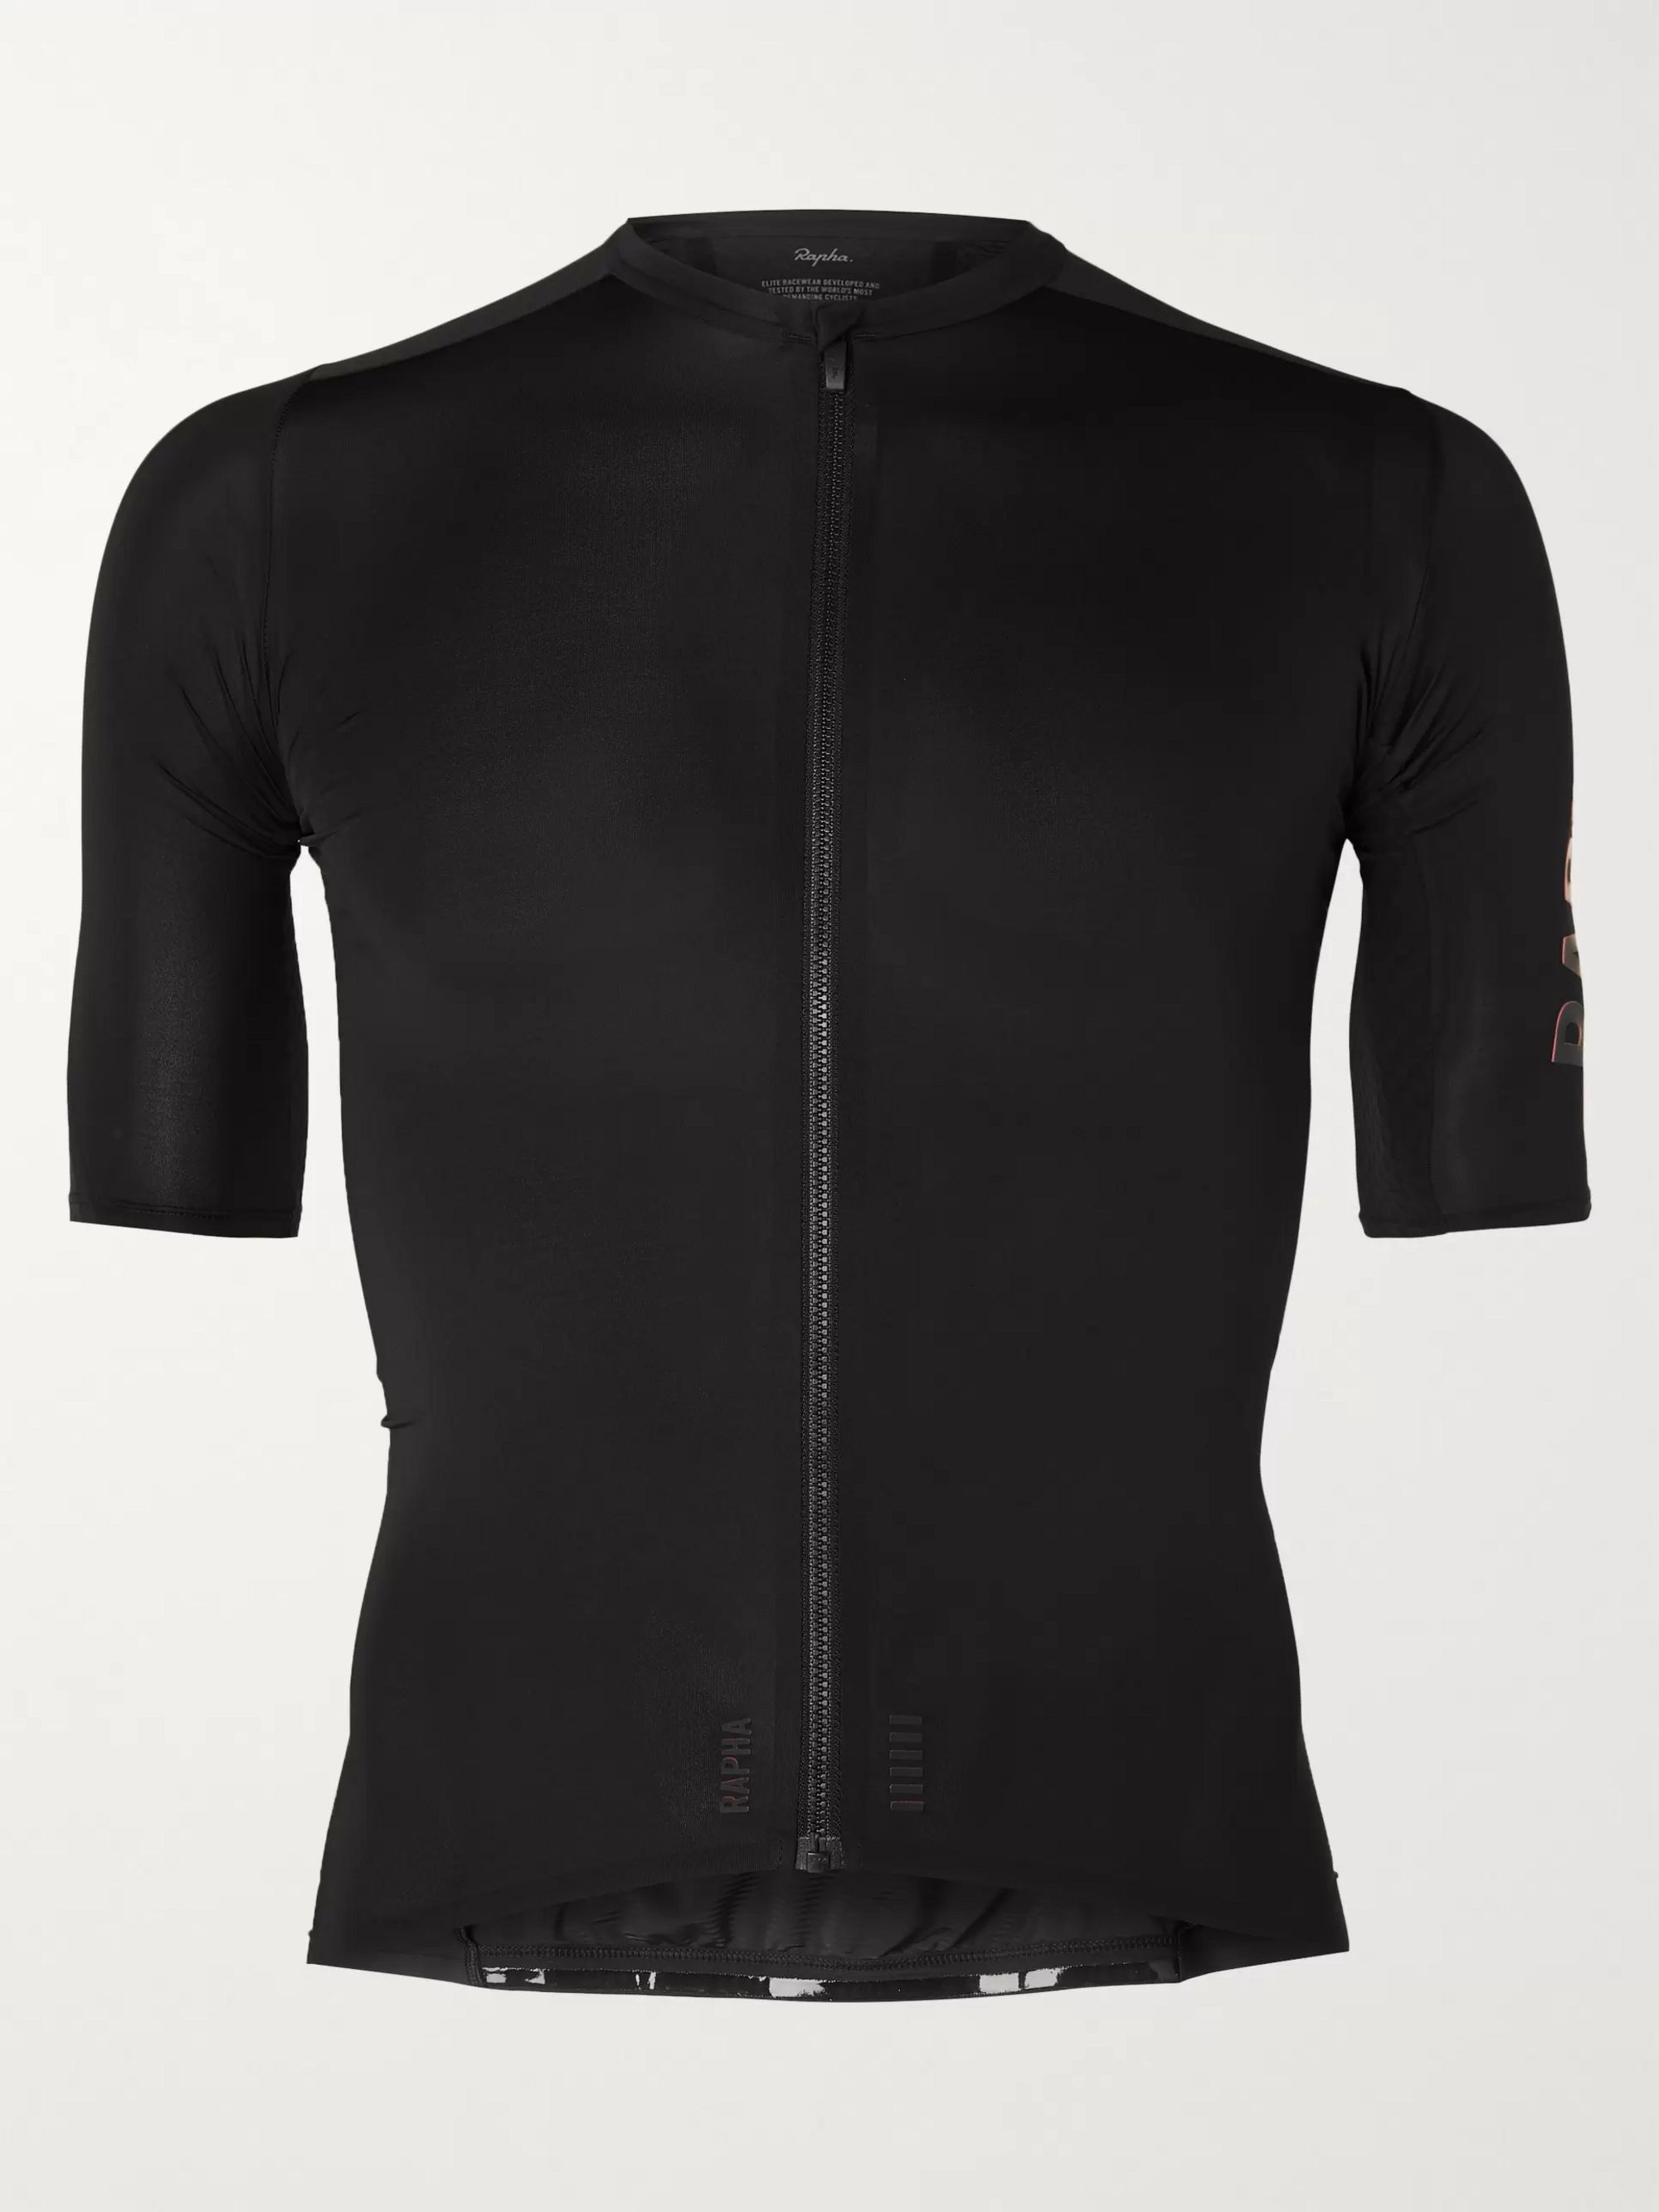 Rapha Pro Team Aero Cycling Jersey